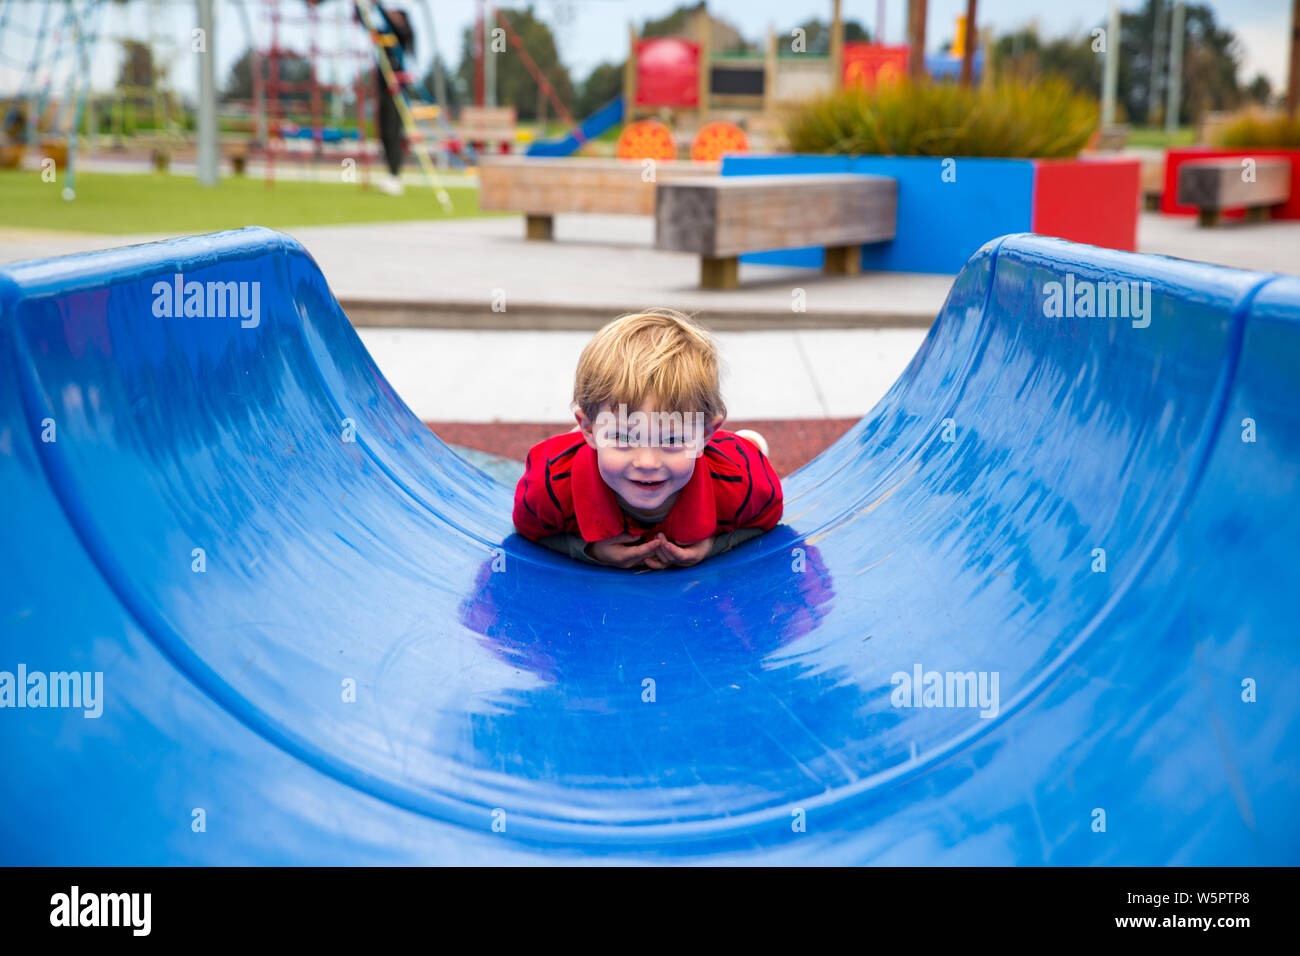 A two-year old boy goes down a blue slide on his tummy, having fun at a new playground, in Canterbury, New Zealand Stock Photo